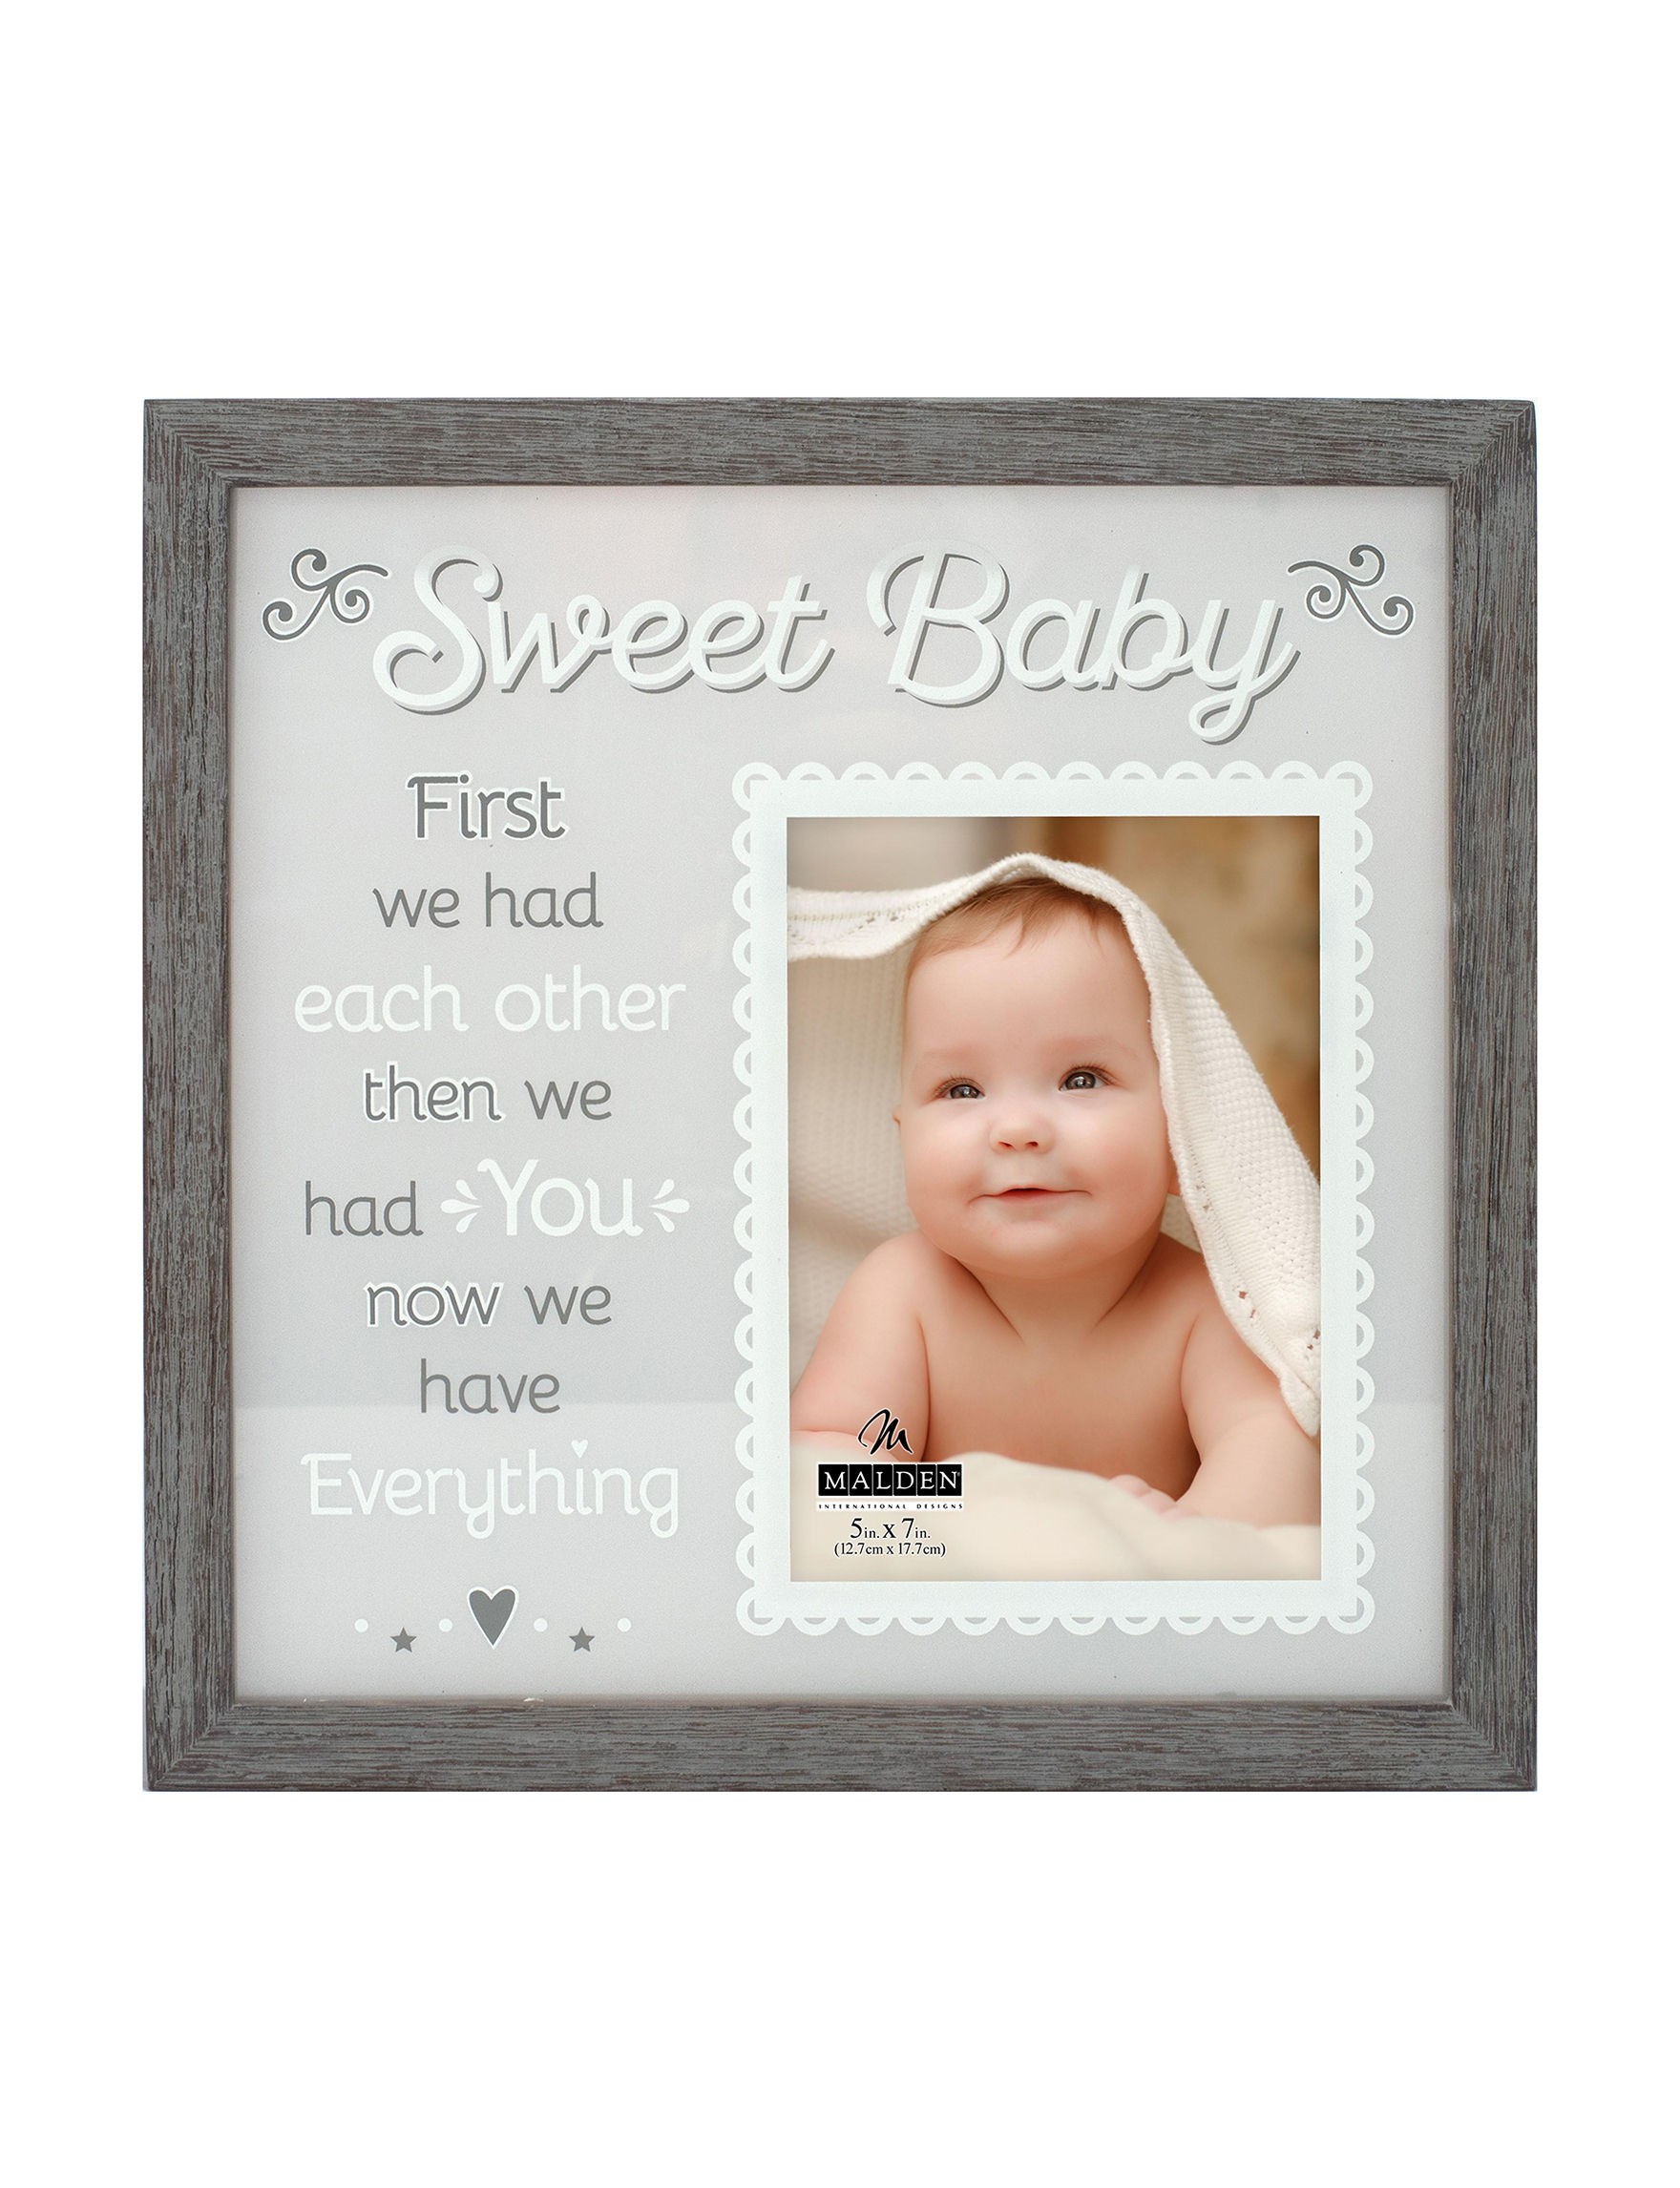 Malden Clear Wall Art Frames & Shadow Boxes